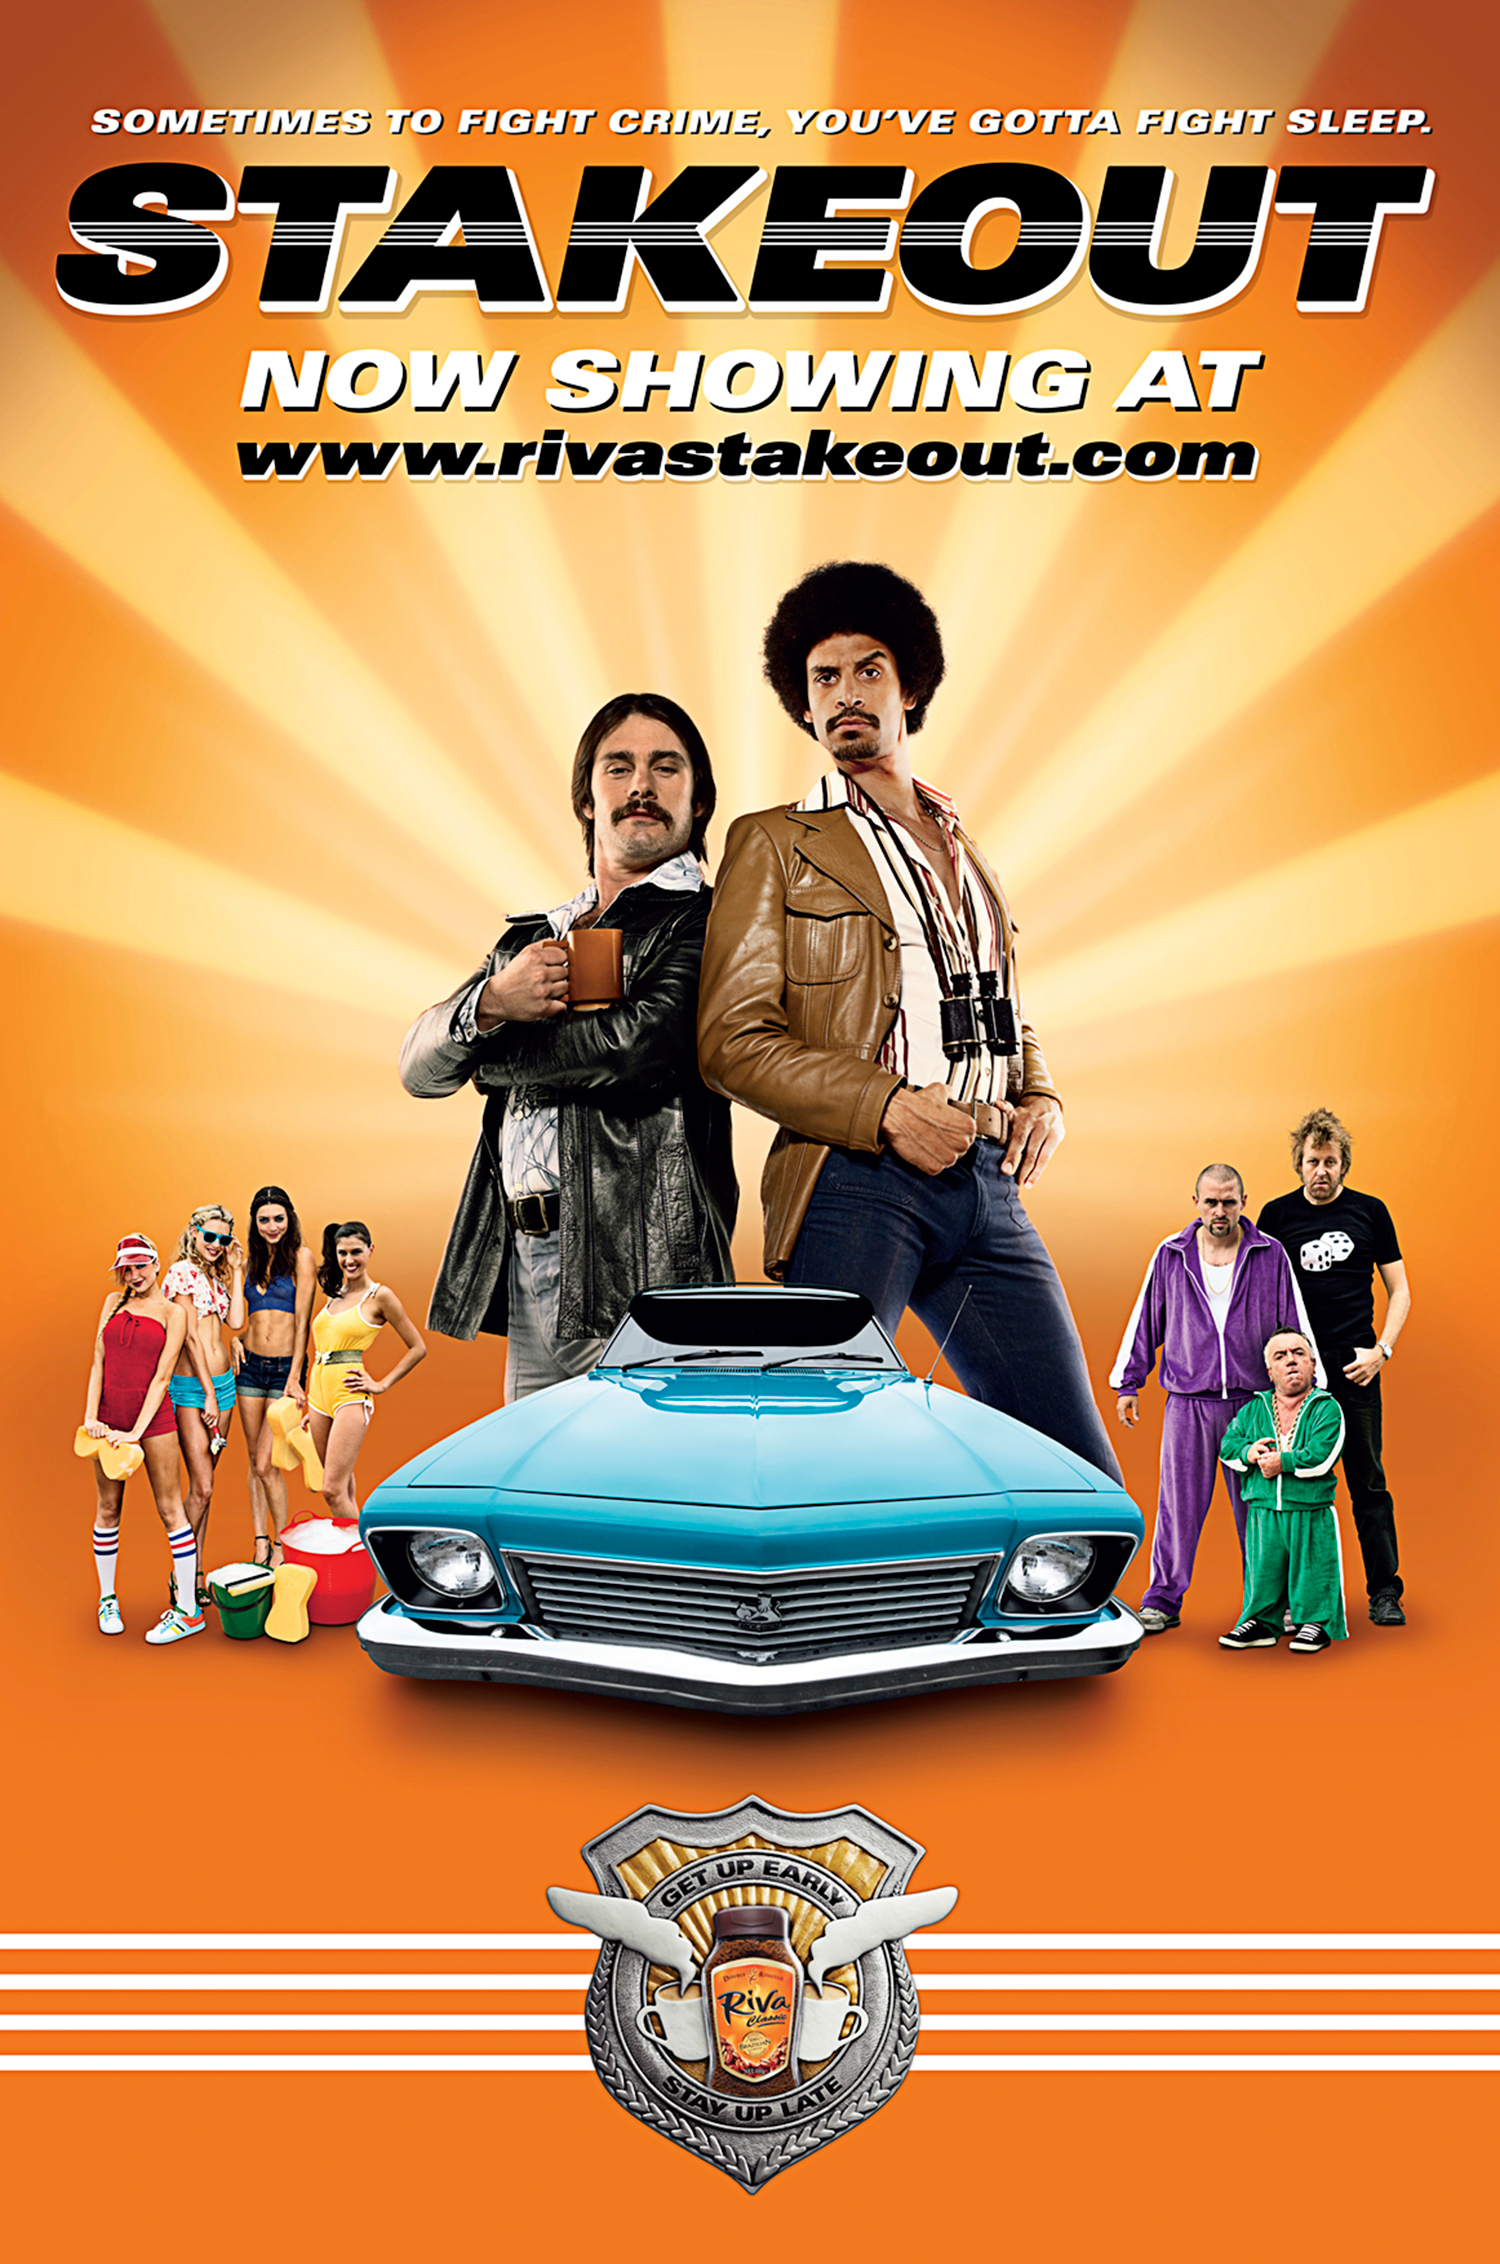 RIVA-STAKEOUT-POSTER-#1-copy.jpg